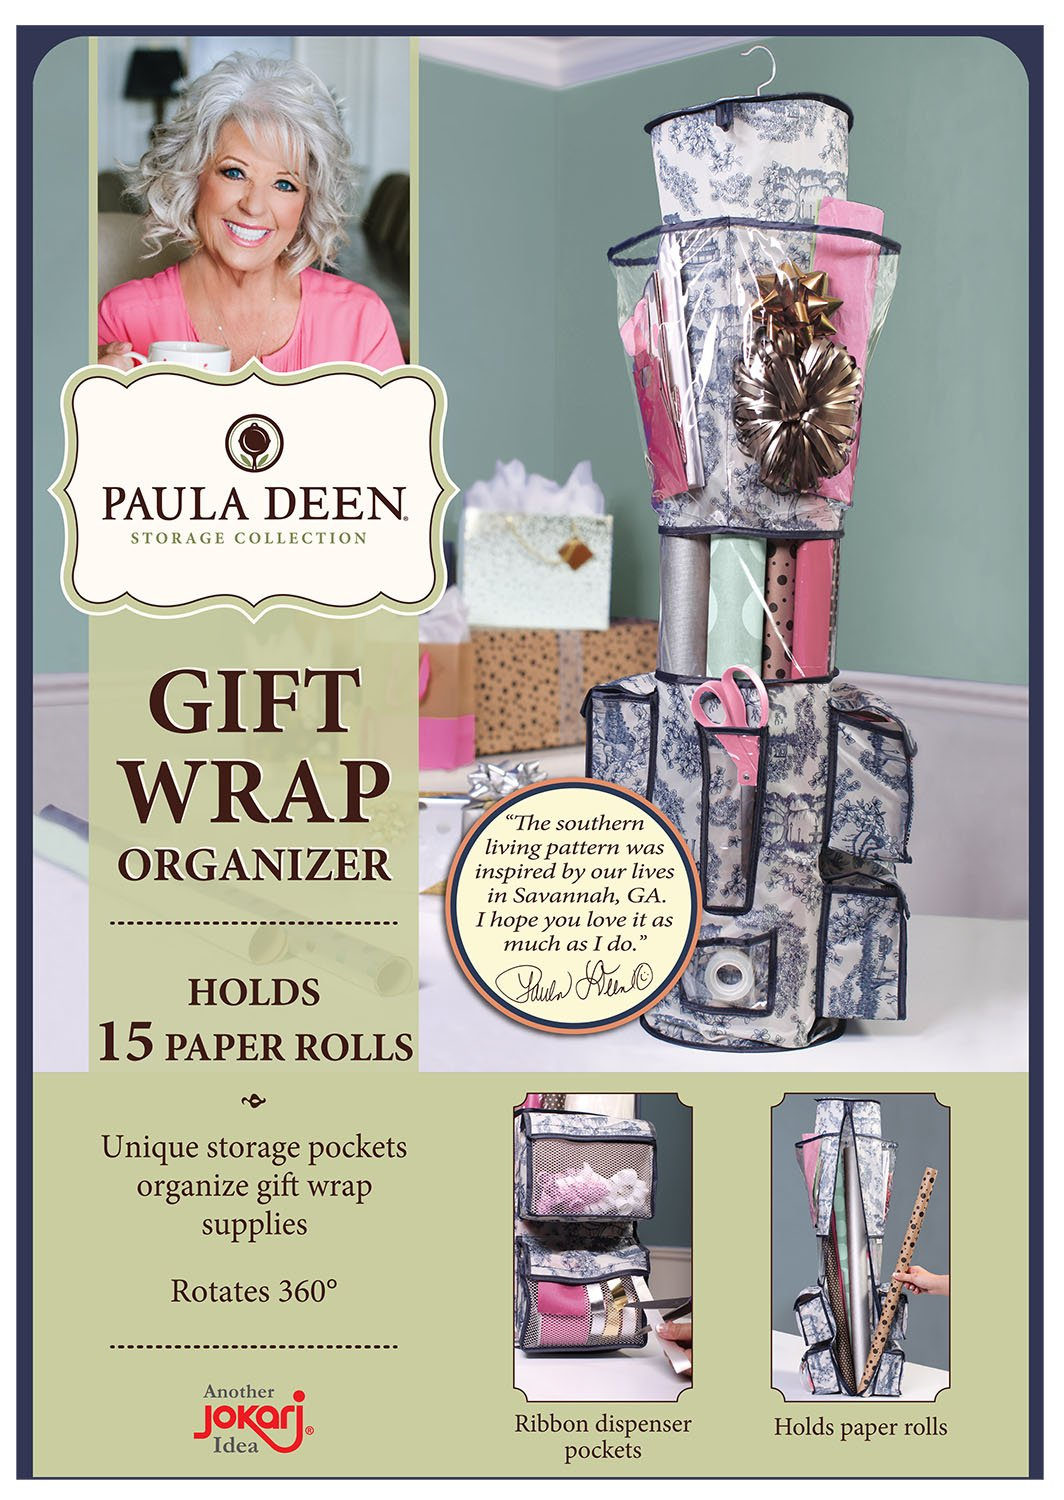 Paula Deen Gift Wrap Organizer - Storage for Wrapping Paper (All Sized Rolls), Gift Bags - Organize Your Closet with this Hanging Bag & Box to Have Organization, Clear Pockets & Hook Hangs